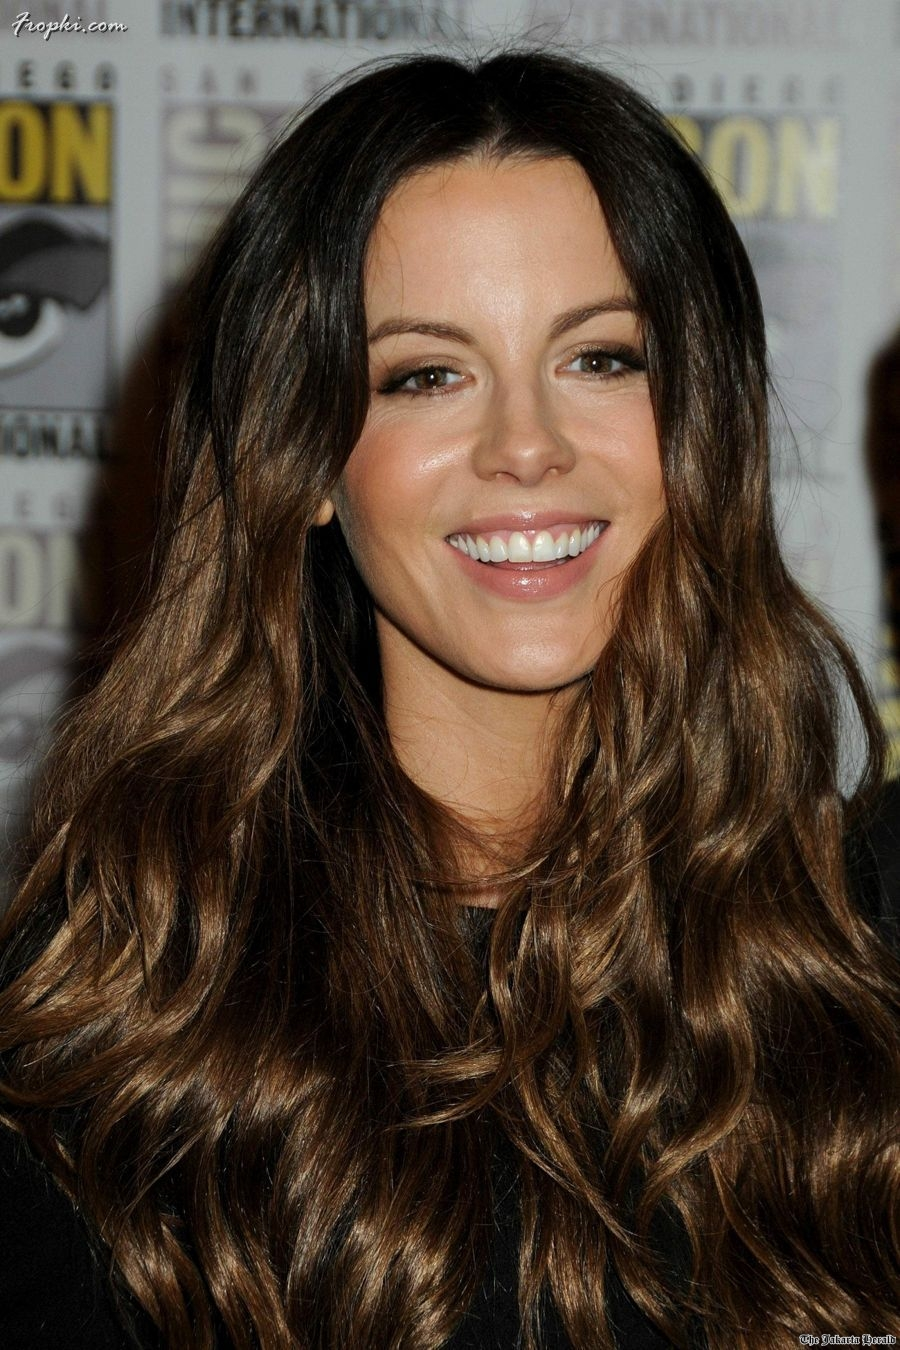 Latest Long and Curly Hairstyles looks 2012